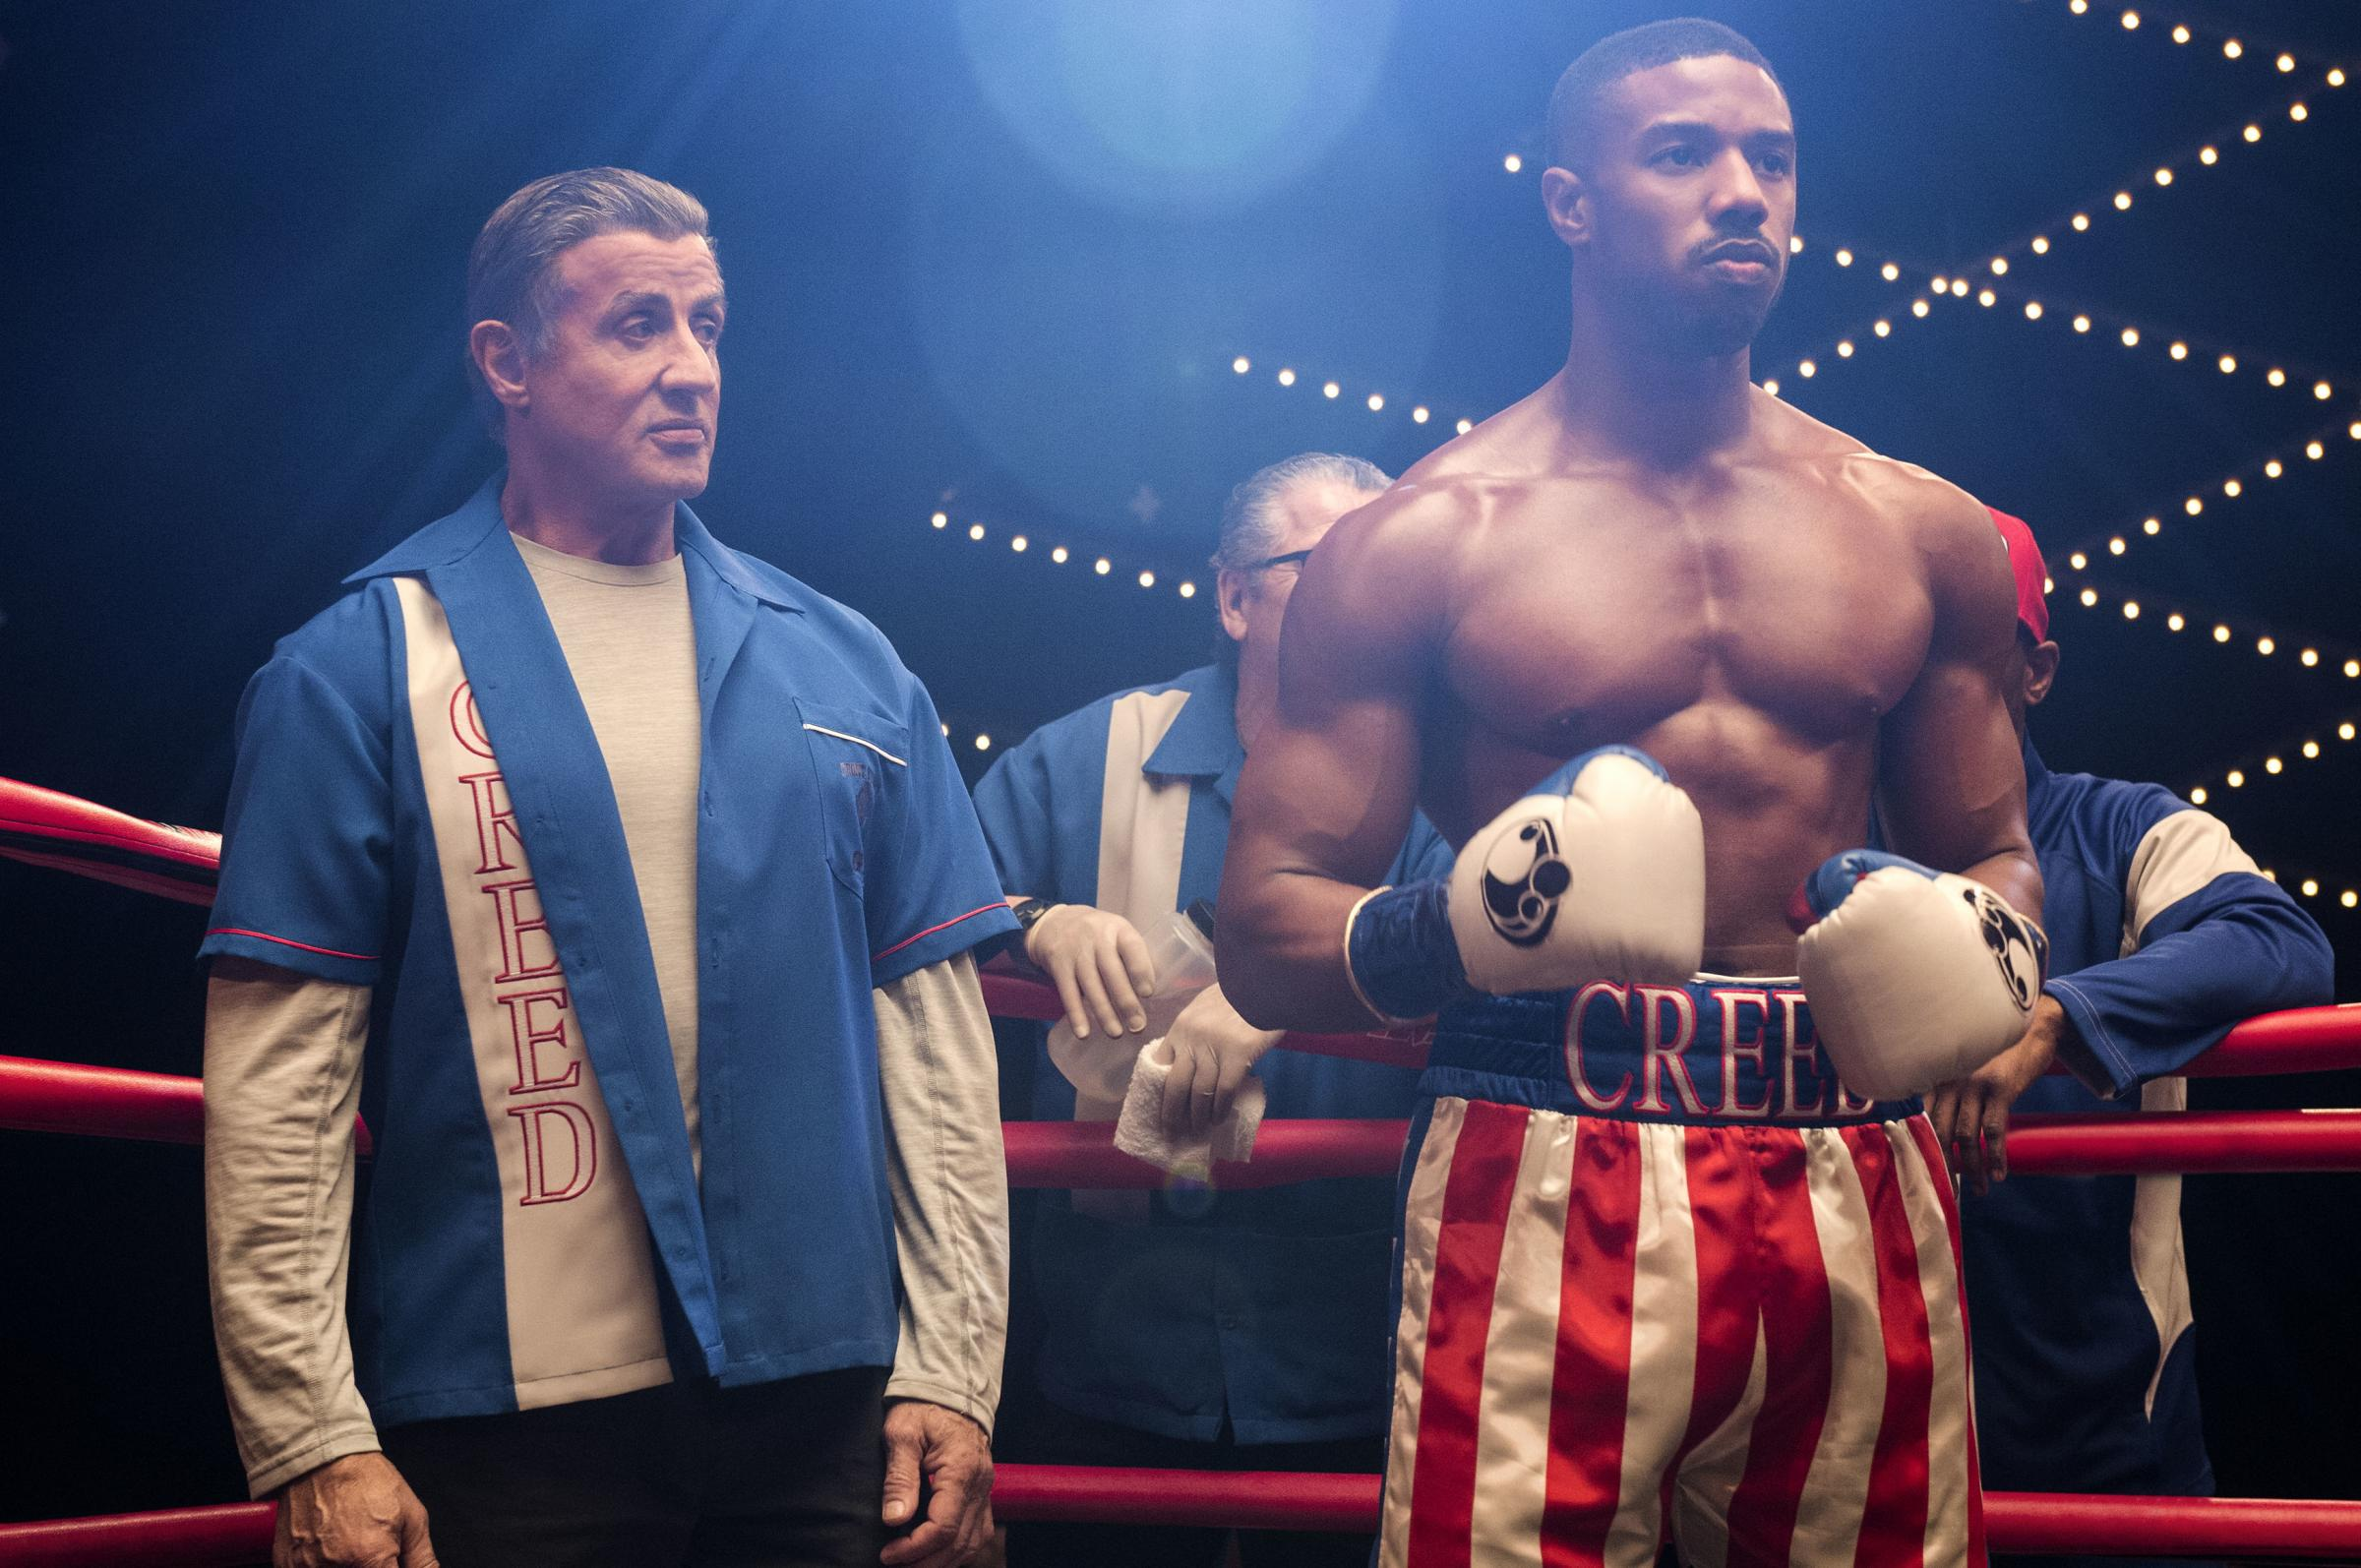 Undated film still handout from Creed II. Pictured: Sylvester Stallone as Rocky Balboa and Michael B. Jordan stars as Adonis Creed. See PA Feature SHOWBIZ Film Reviews. Picture credit should read: PA Photo/Metro-Goldwyn-Mayer Pictures Inc./Warner Bros. En